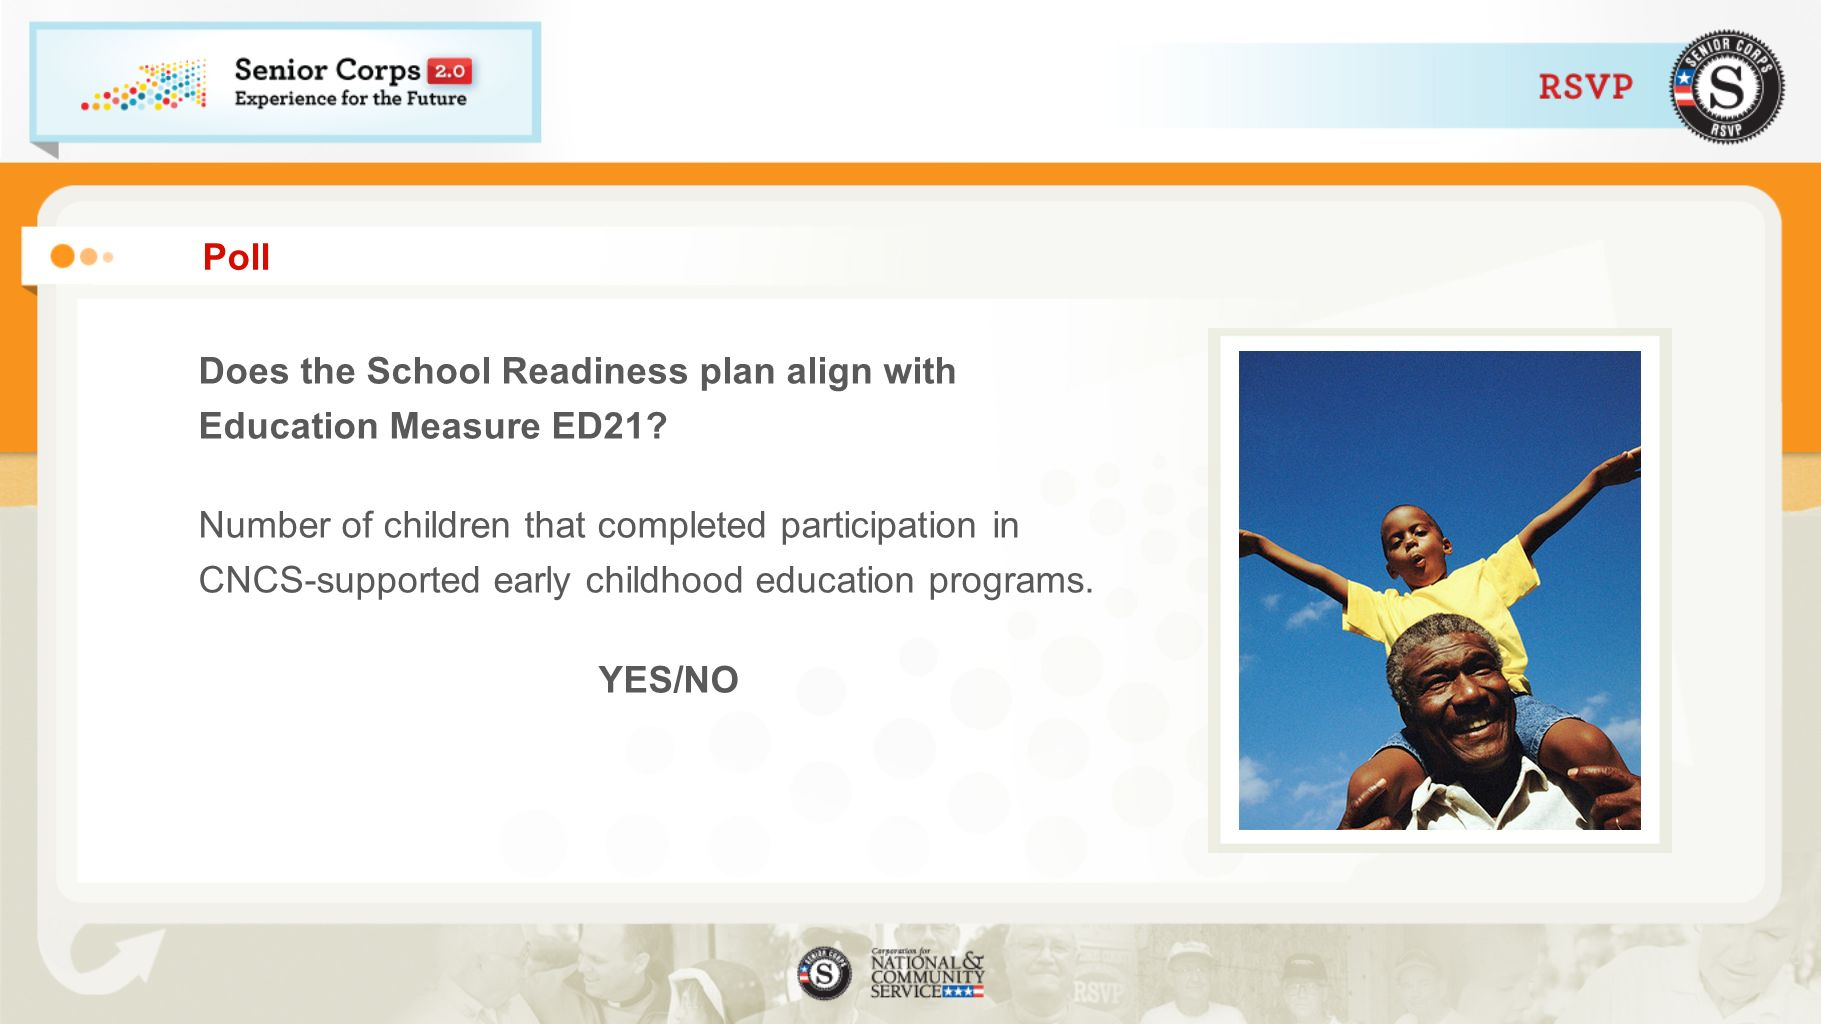 Does the School Readiness plan align with Education Measure ED21